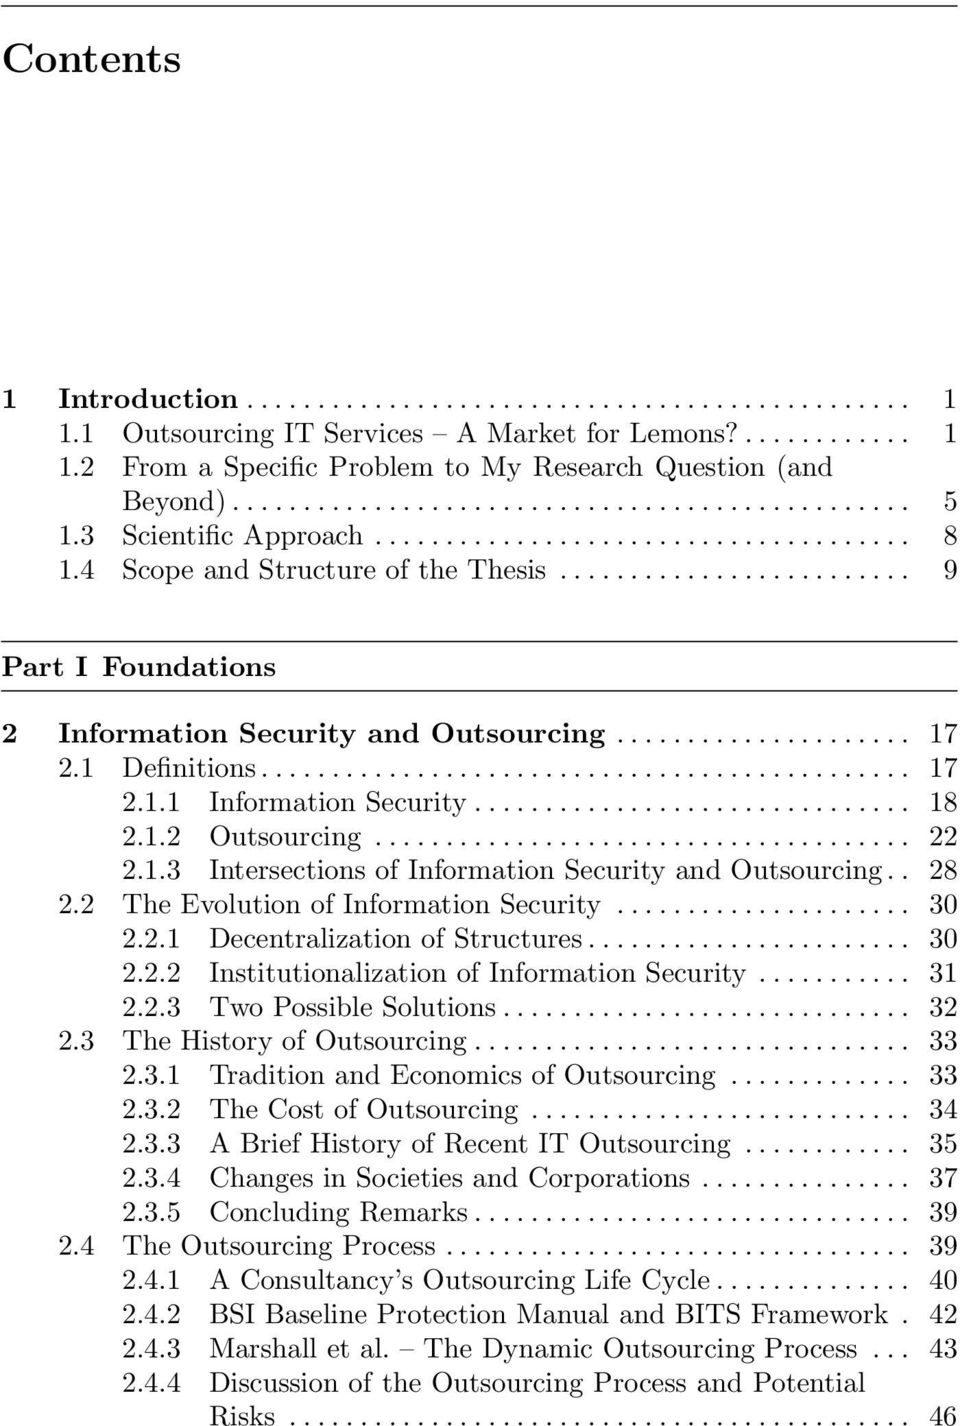 ........................ 9 Part I Foundations 2 Information Security and Outsourcing..................... 17 2.1 Definitions.............................................. 17 2.1.1 Information Security.